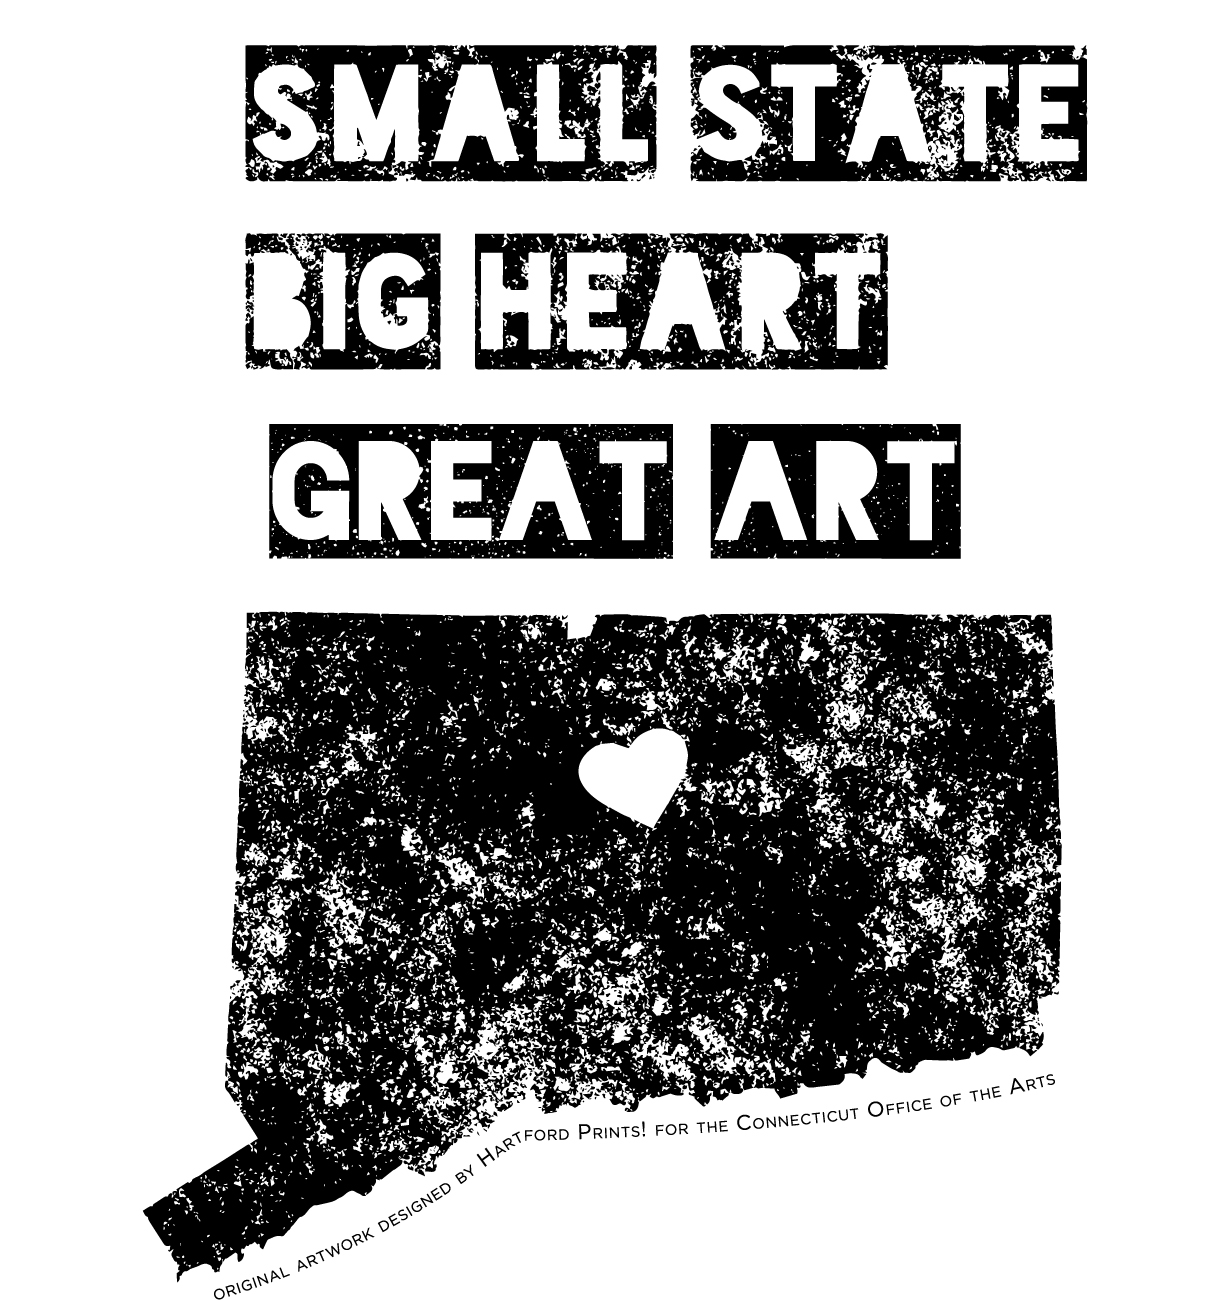 A black and white original print by Hartford Prints!  Small State, Big Heart, Great Art